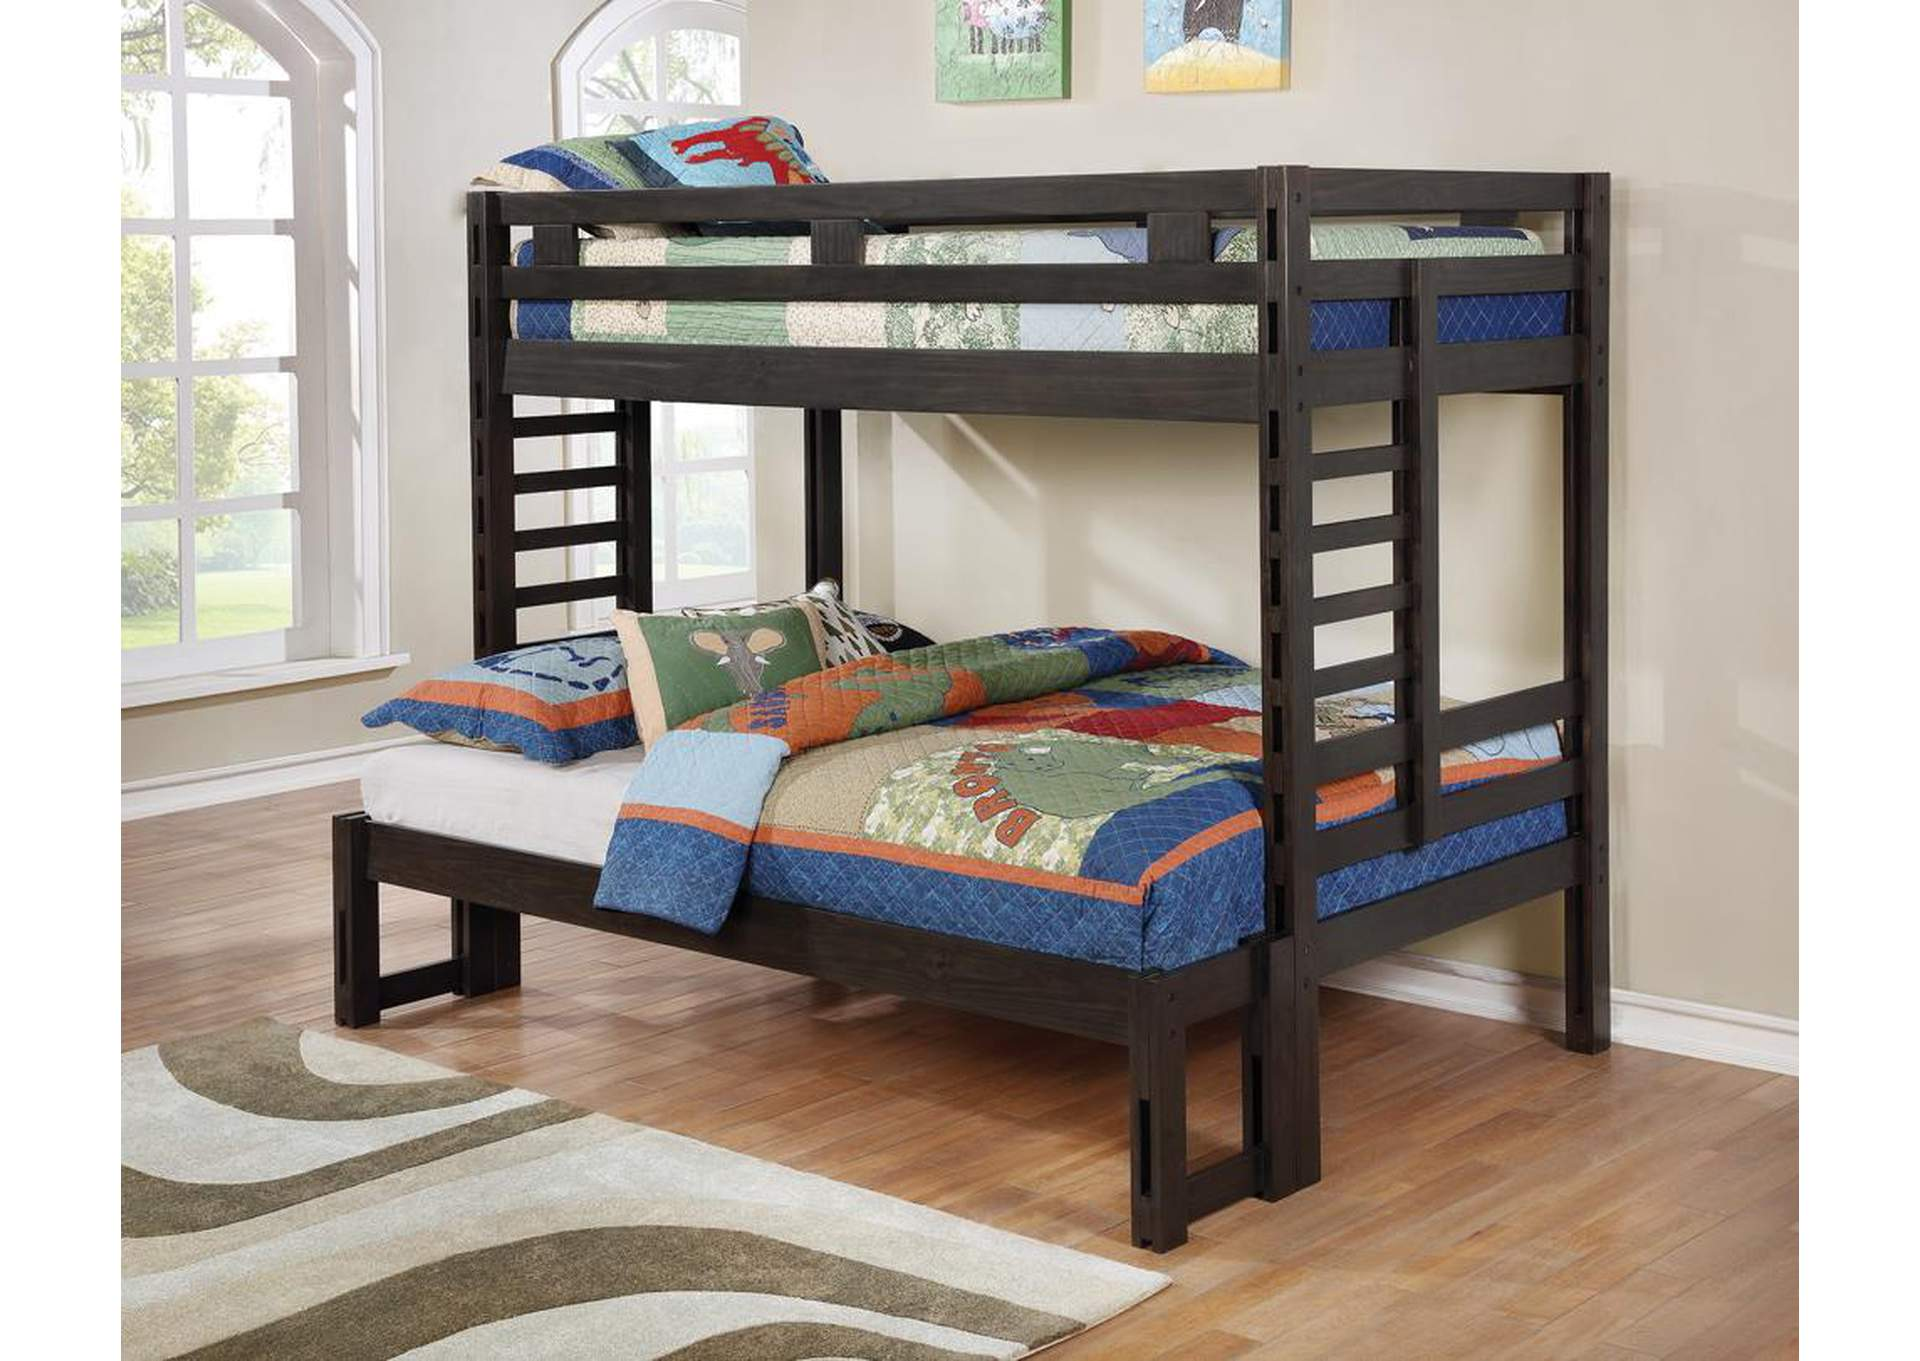 Hilshire Dark Grey Twin/Full Bunk Bed,Coaster Furniture